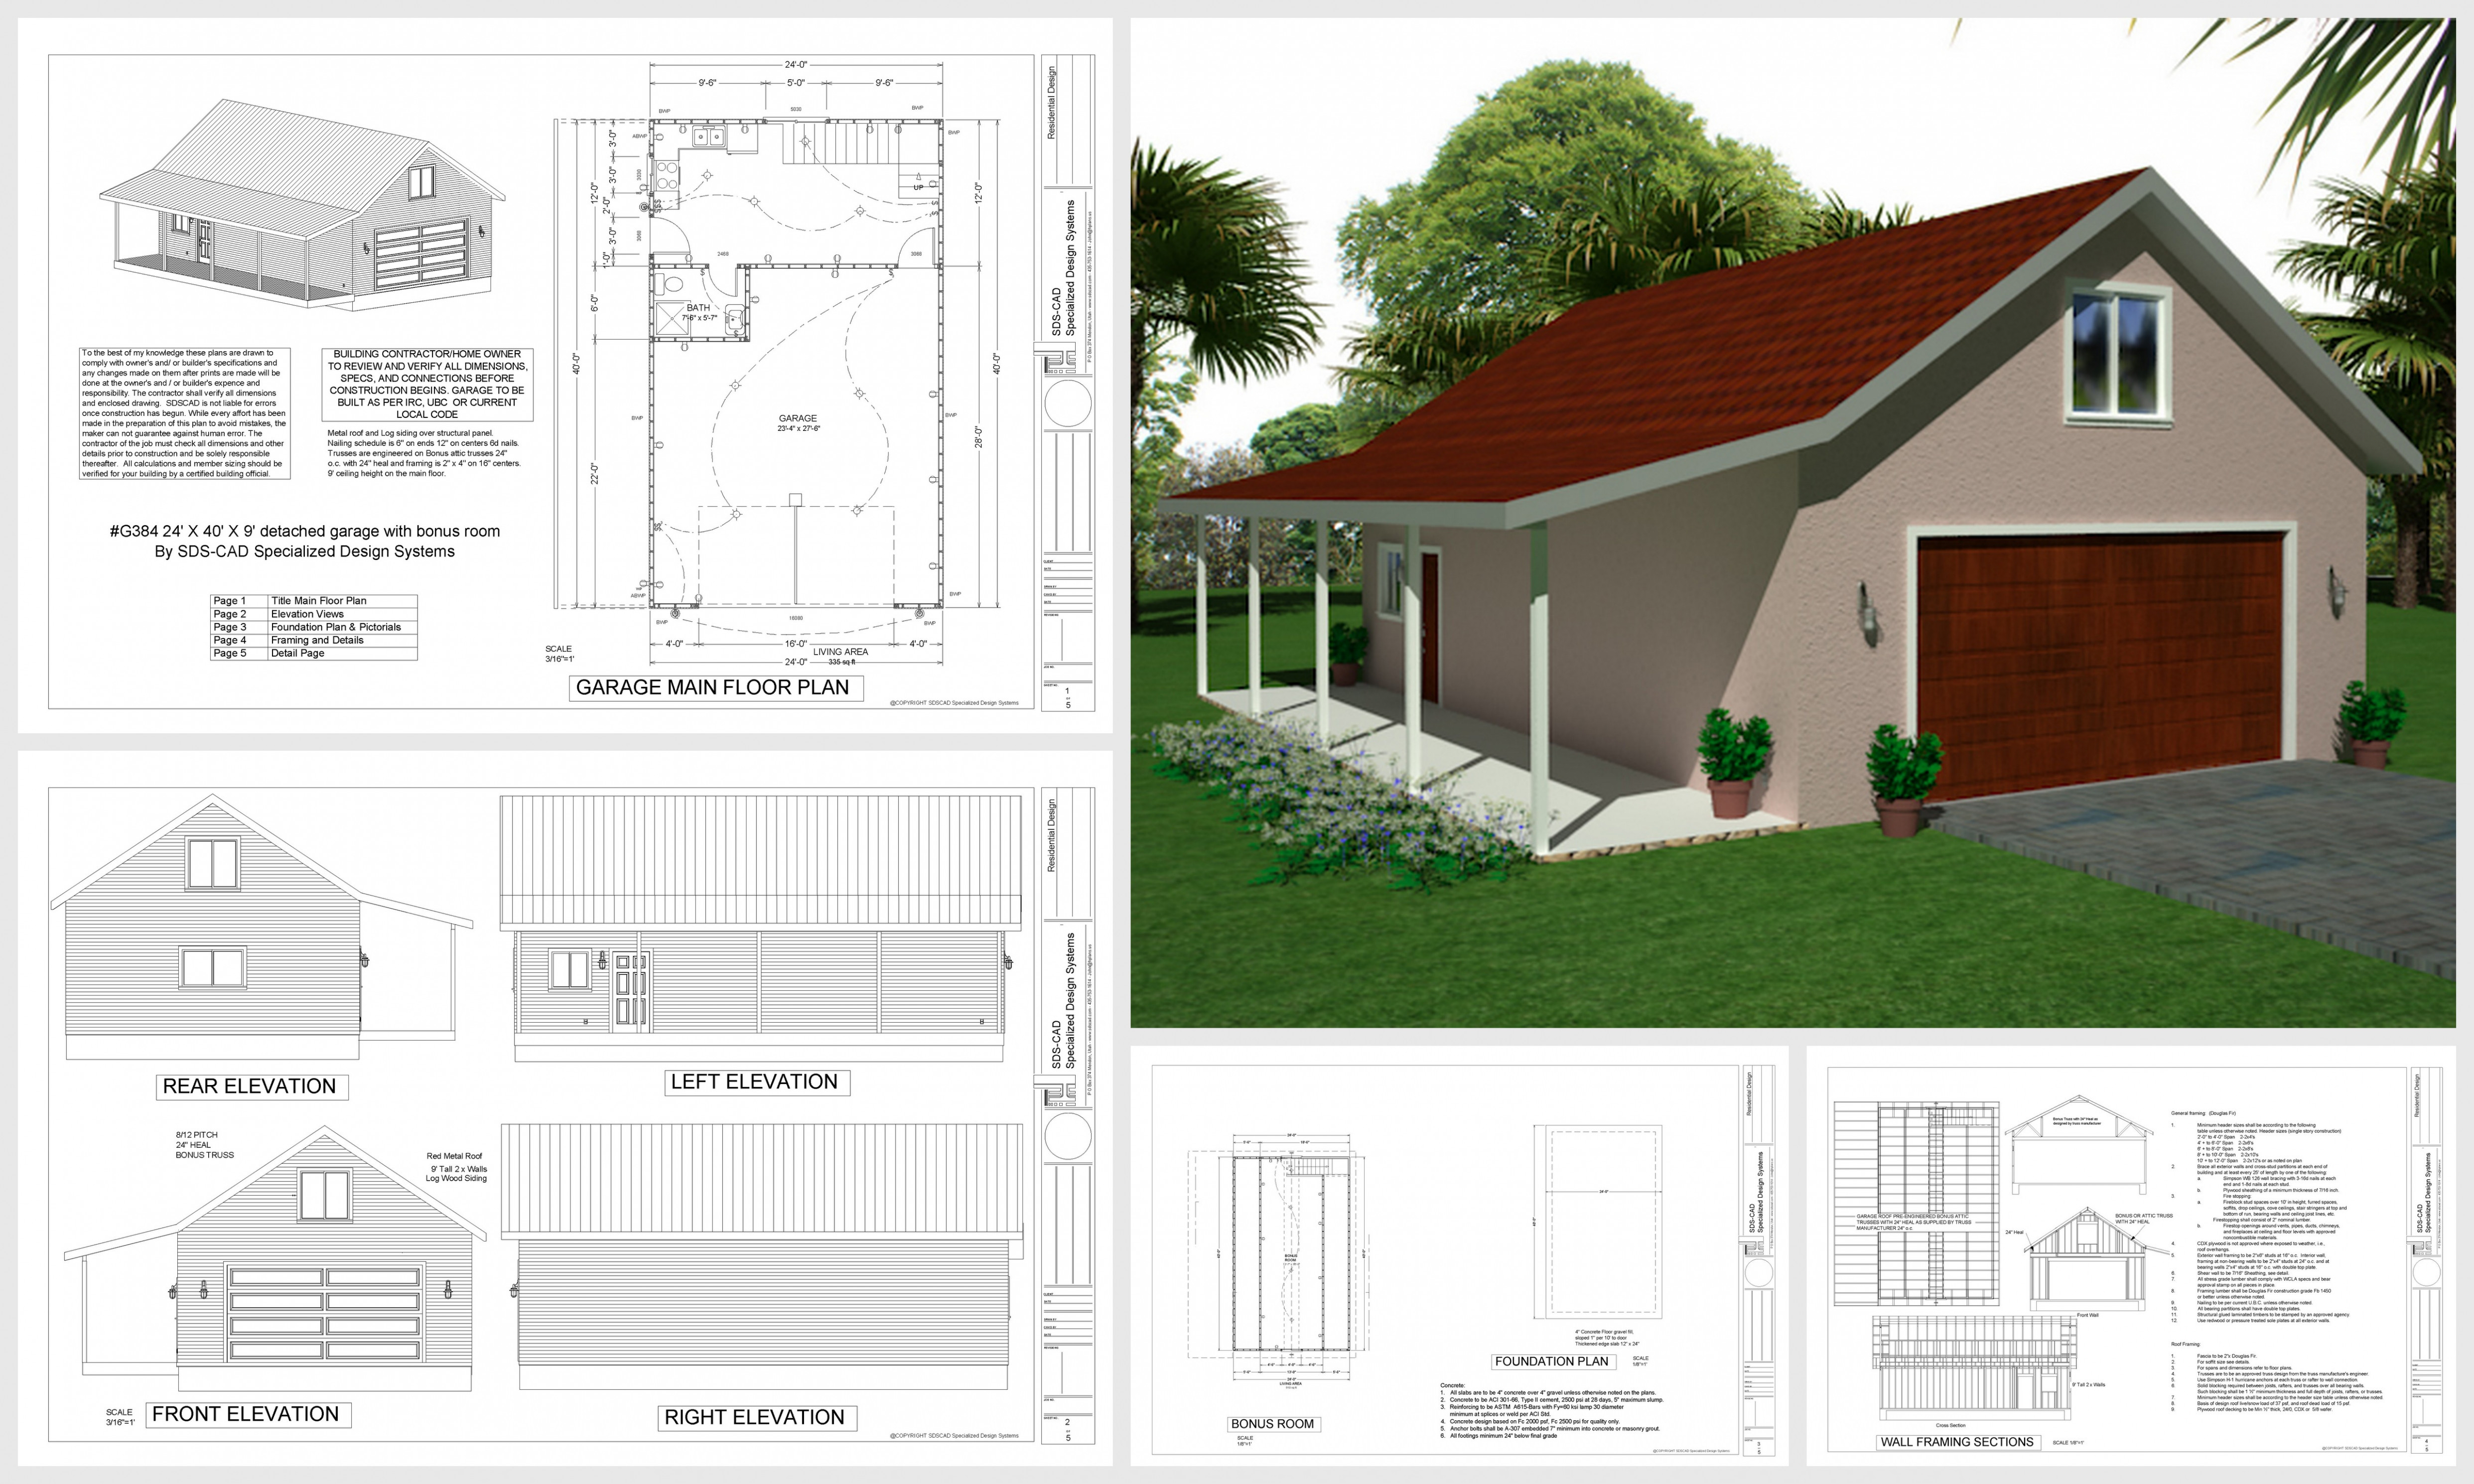 11 FREE Detailed DIY Garage Plans With Instructions To ..